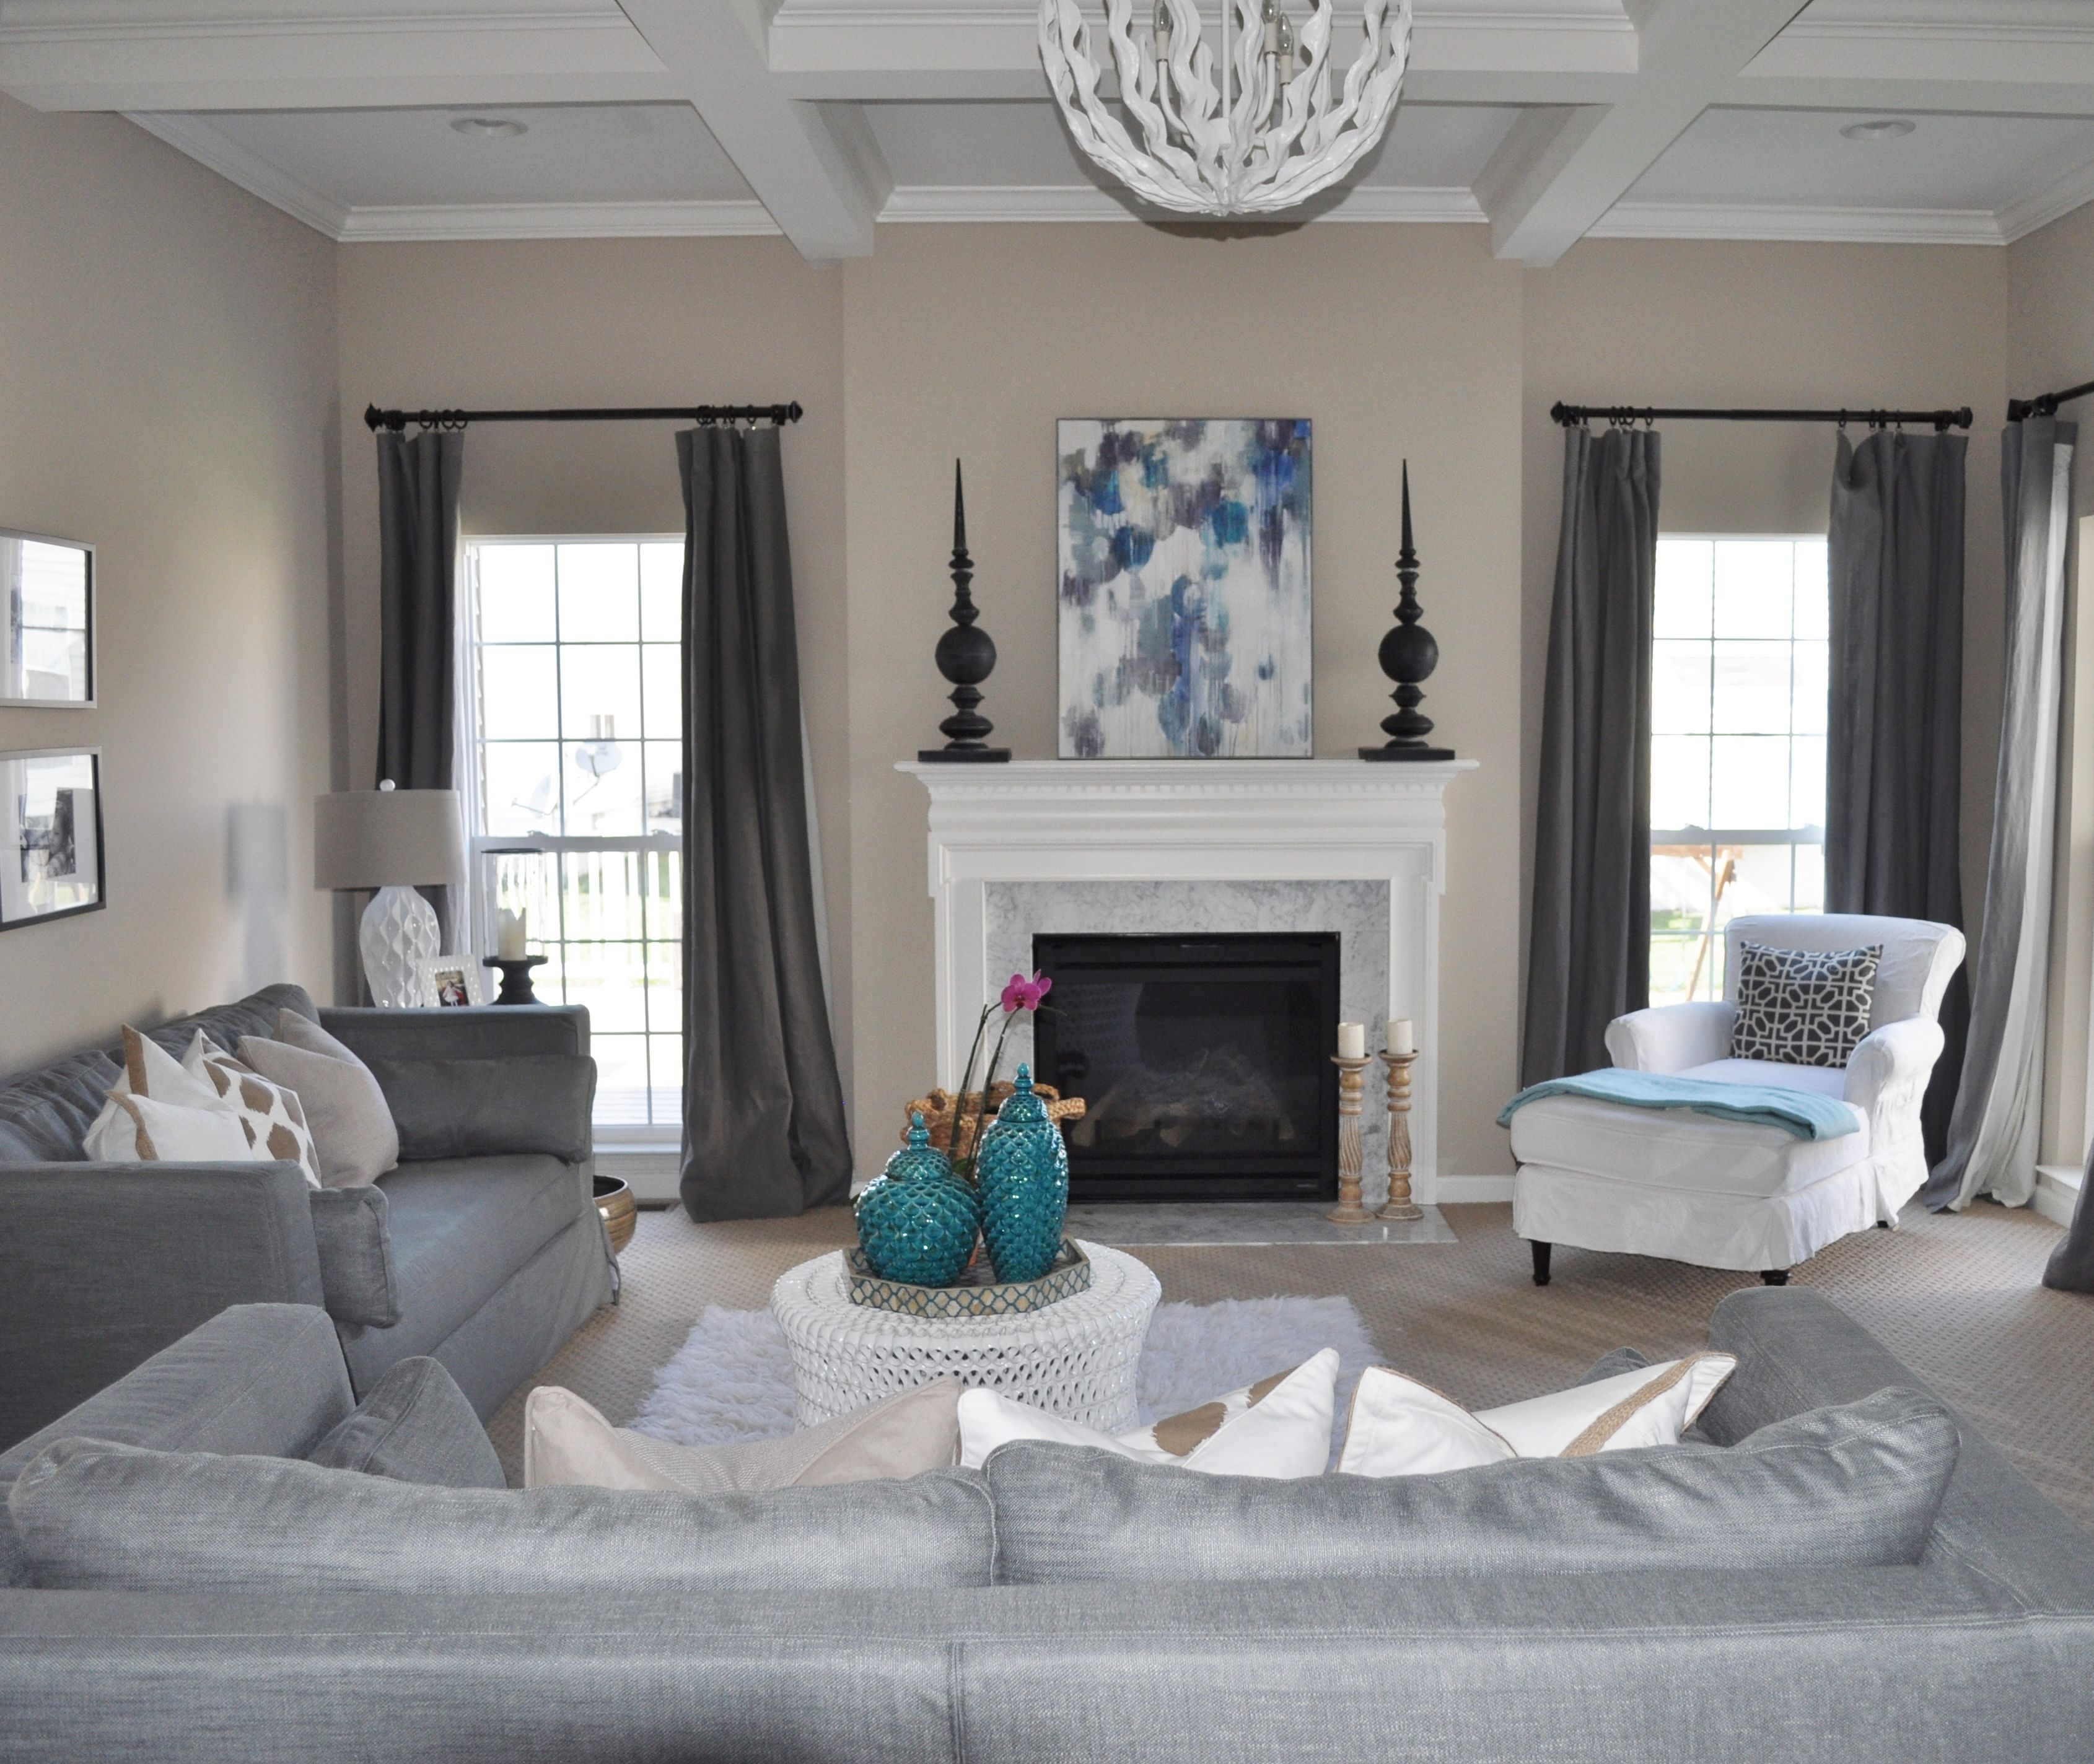 Luxury Family Rooms: Design By JWS Interiors /Affordable Luxury Blog Www.jws